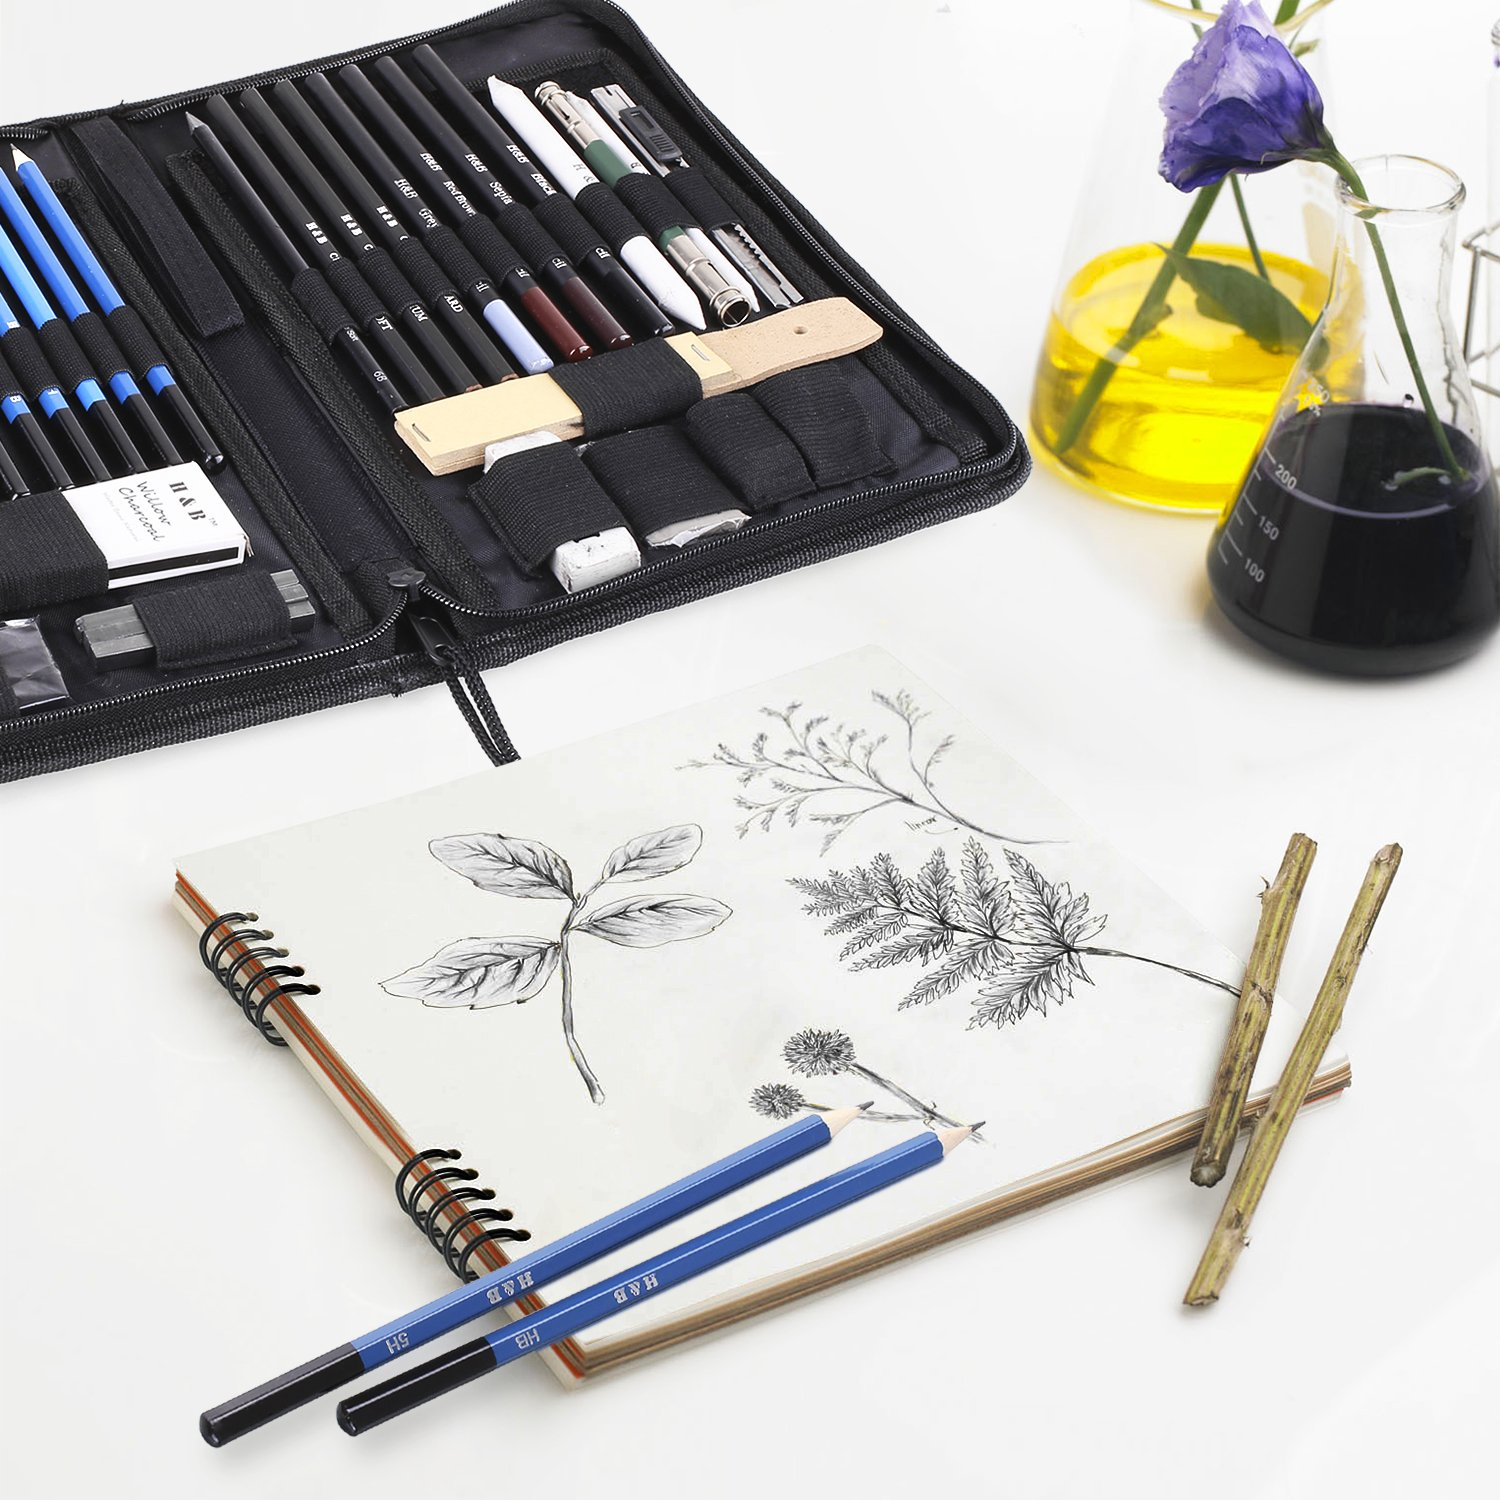 Erasers Kit Bag FEMOR Sketching//Drawing Pencils Set Ideal Gift for Kids and Painting Amateurs 40 Pieces Sketching Art Kit with Sketch//Graphite Pencils